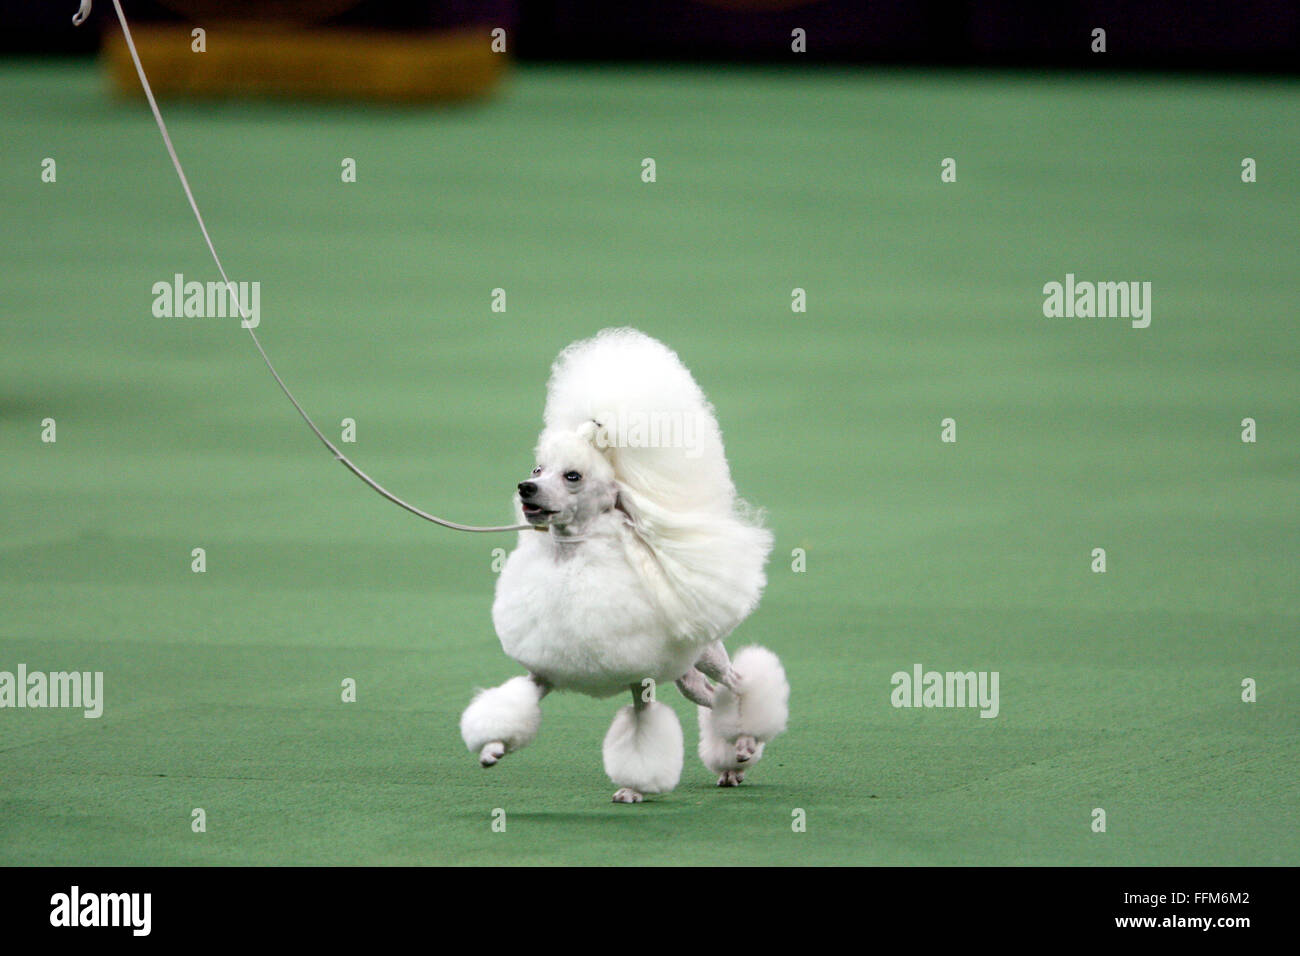 New York, USA. 15th February, 2016. CH Wonderful Rizu Jp Nicole Precious, A Toy Poodle during the Toy Group competition - Stock Image